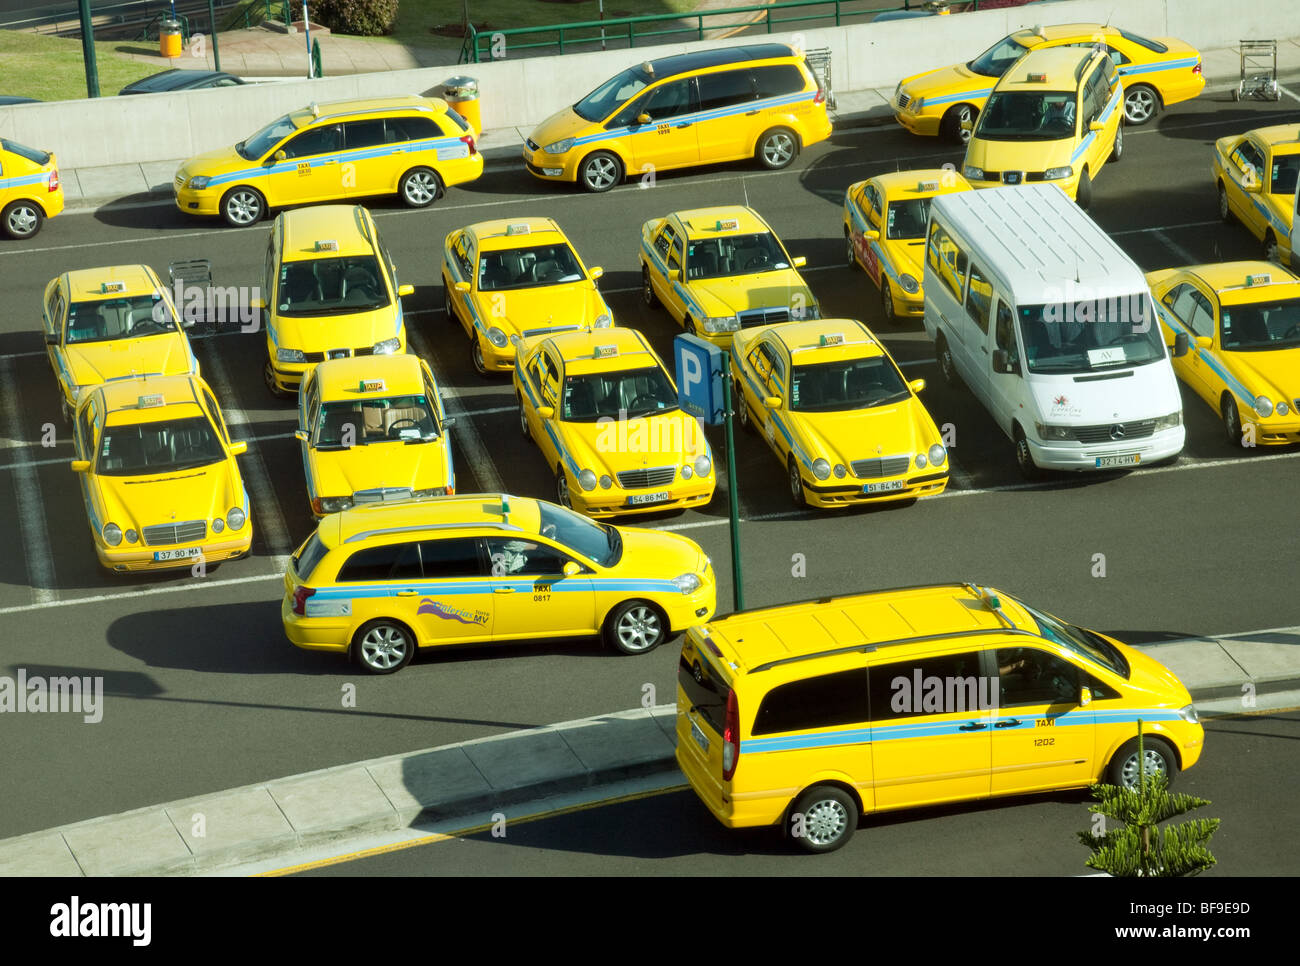 Yellow taxi cabs in a taxi rank, Funchal, Madeira - Stock Image